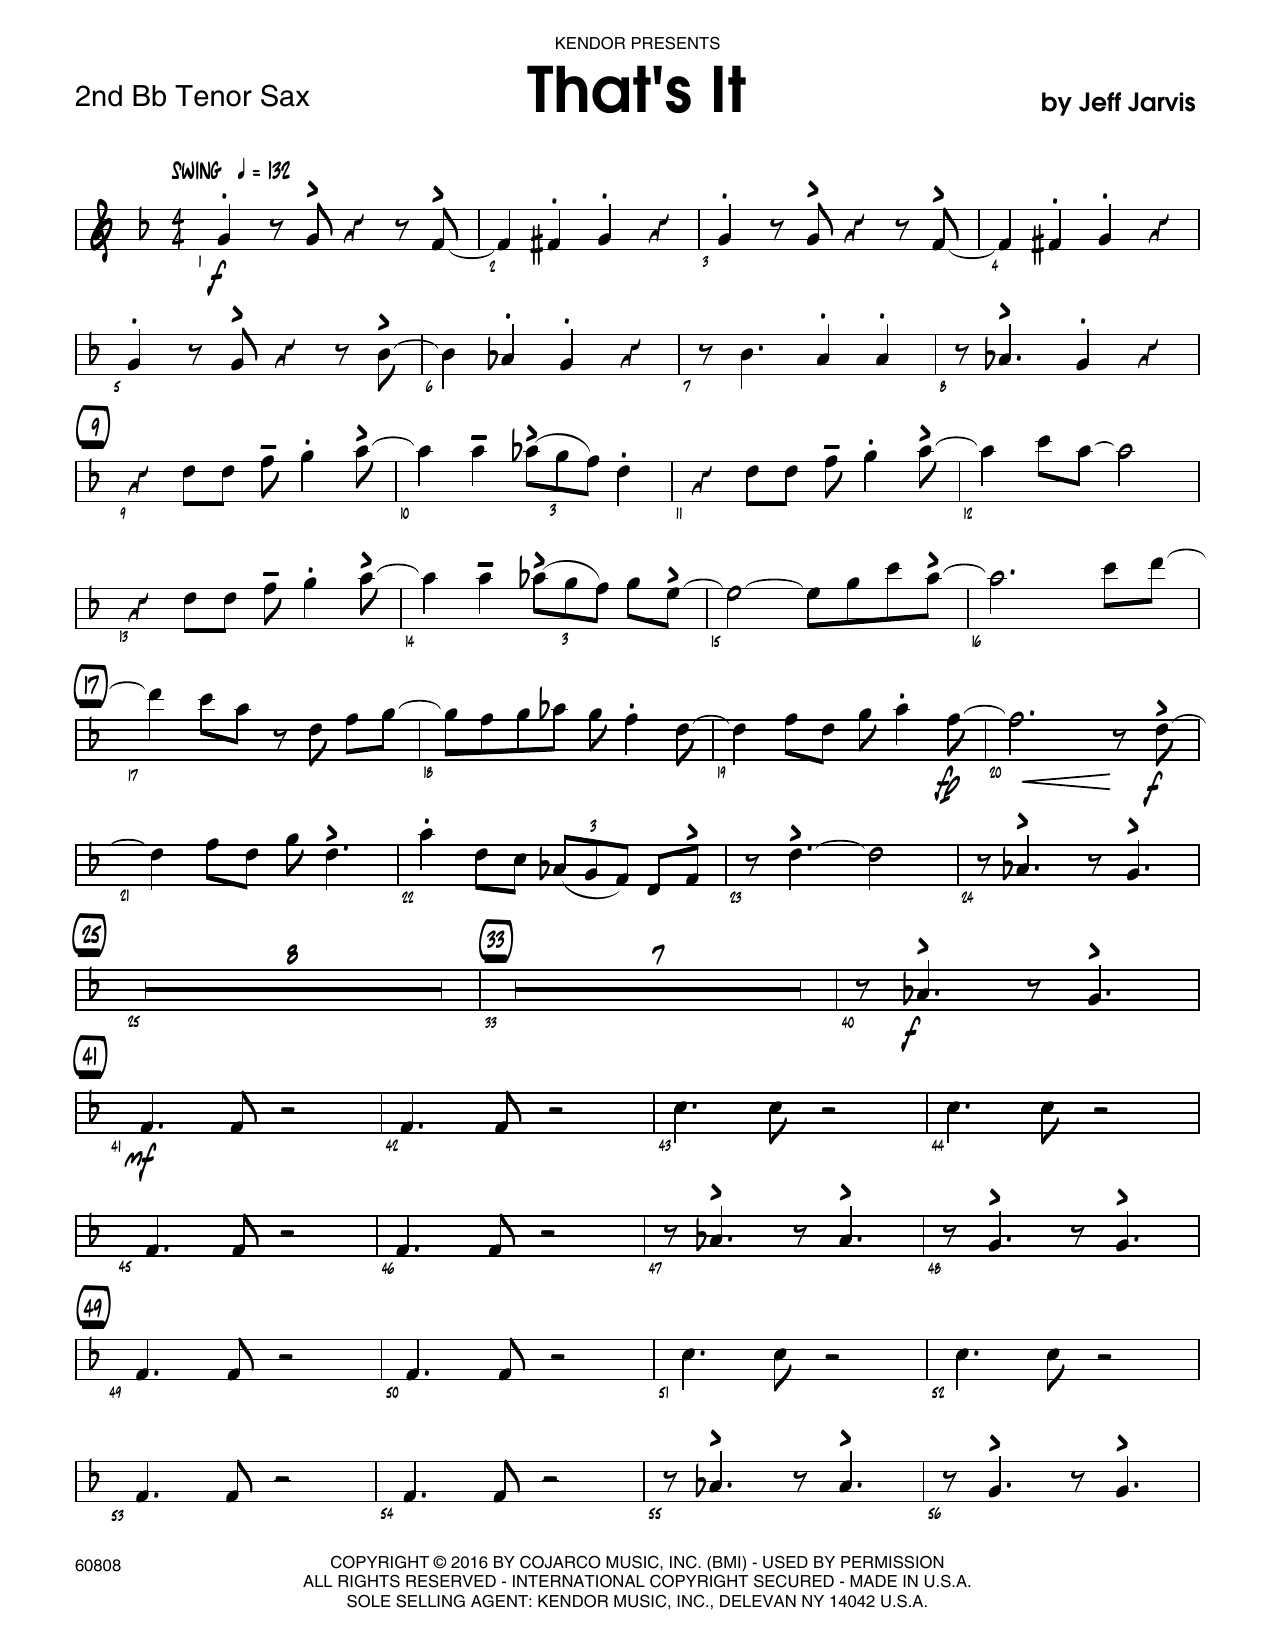 That's It - 2nd Bb Tenor Saxophone Sheet Music